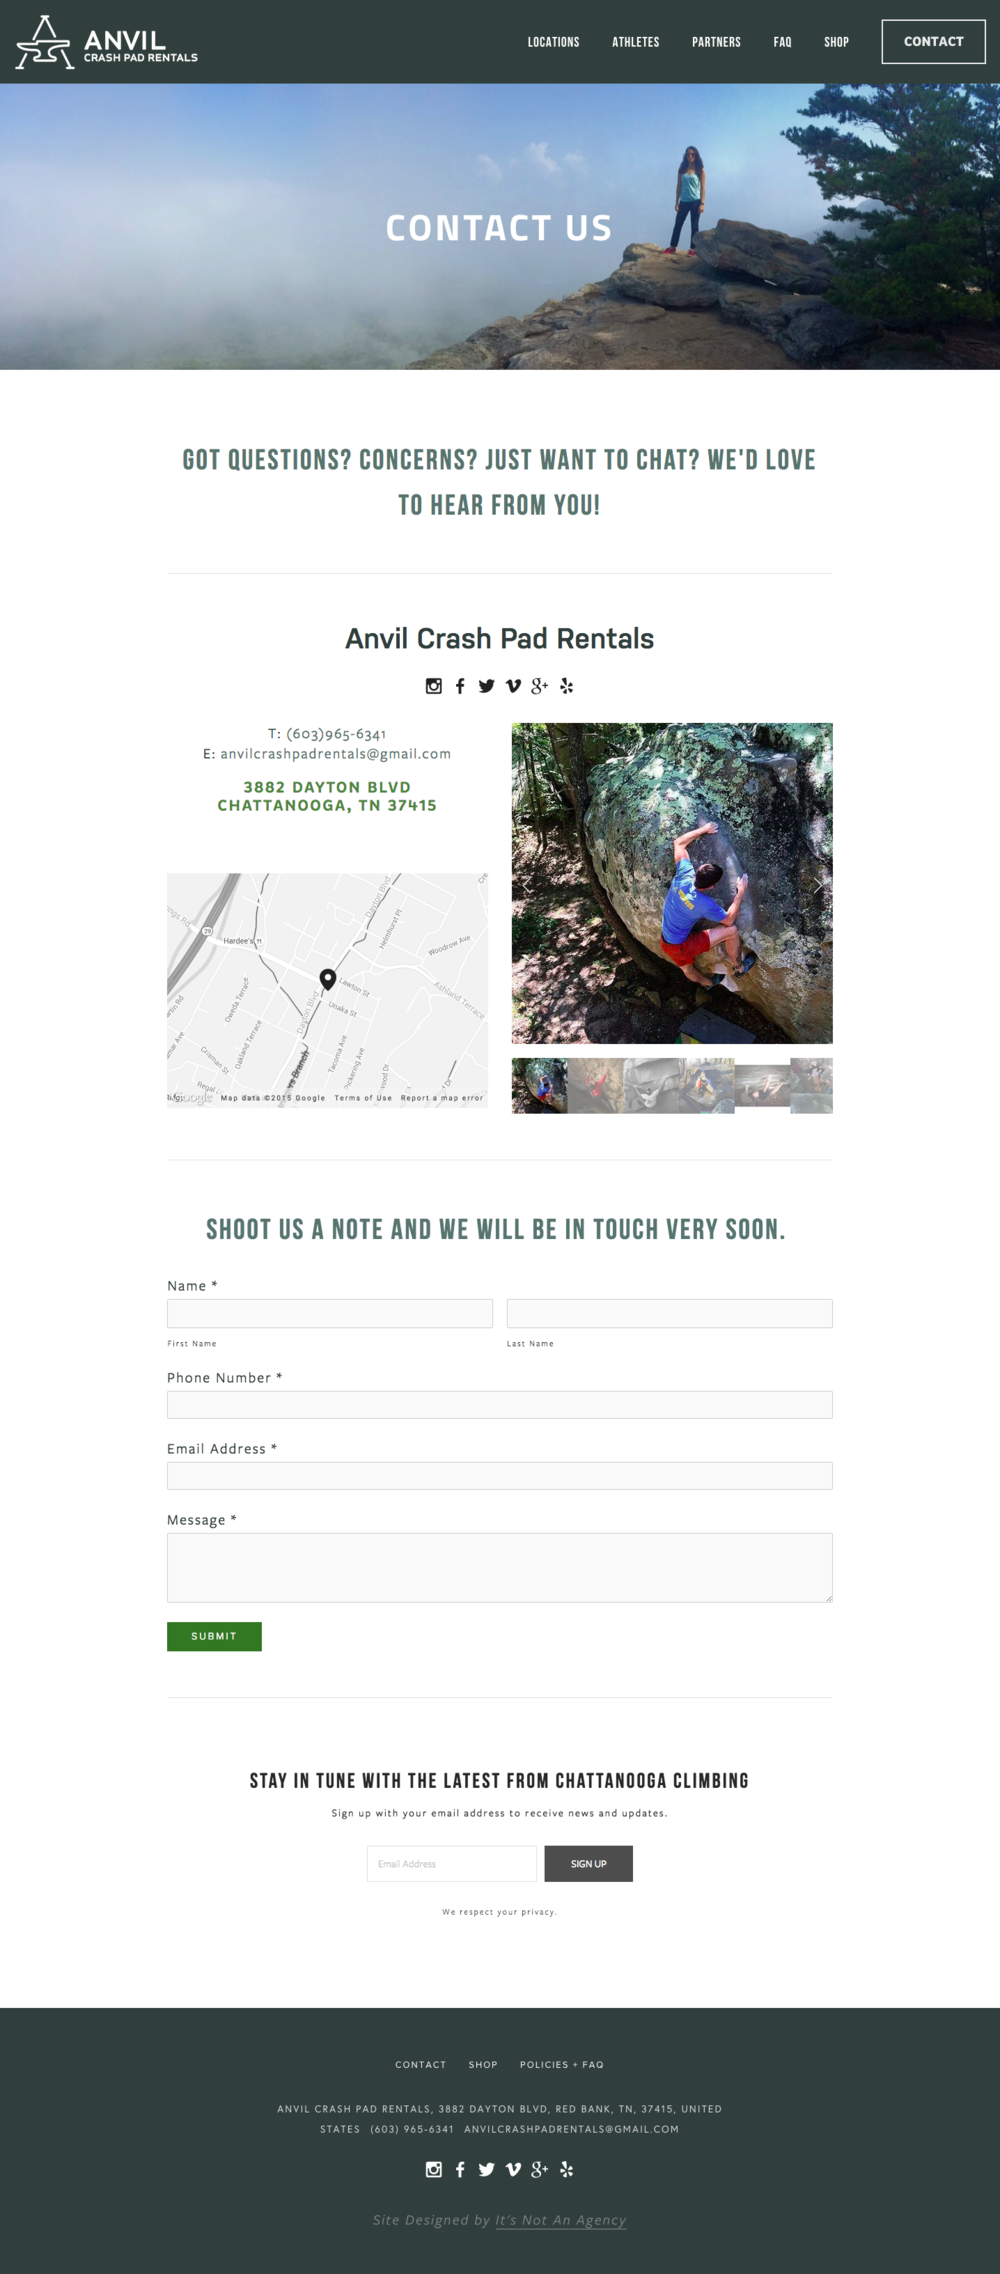 Ecommerce Website Design_Anvil Crash Pad Rentals3.png